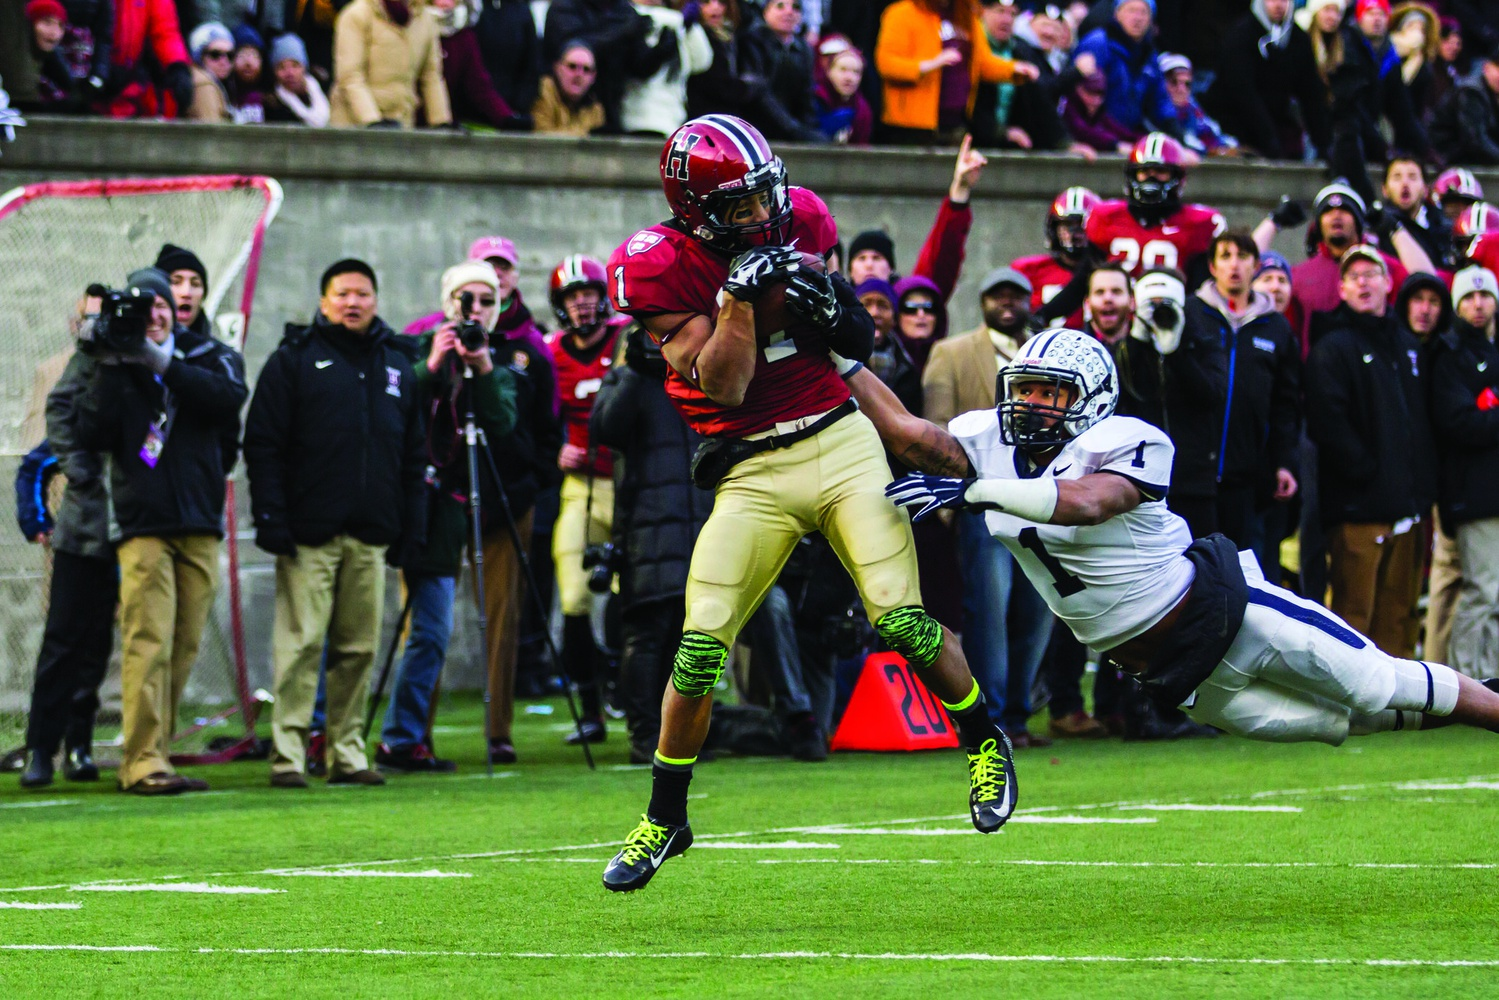 A last-minute touchdown catch for senior wide receiver Andrew Fischer propelled the Harvard football team to an Ancient Eight title over archrival Yale.